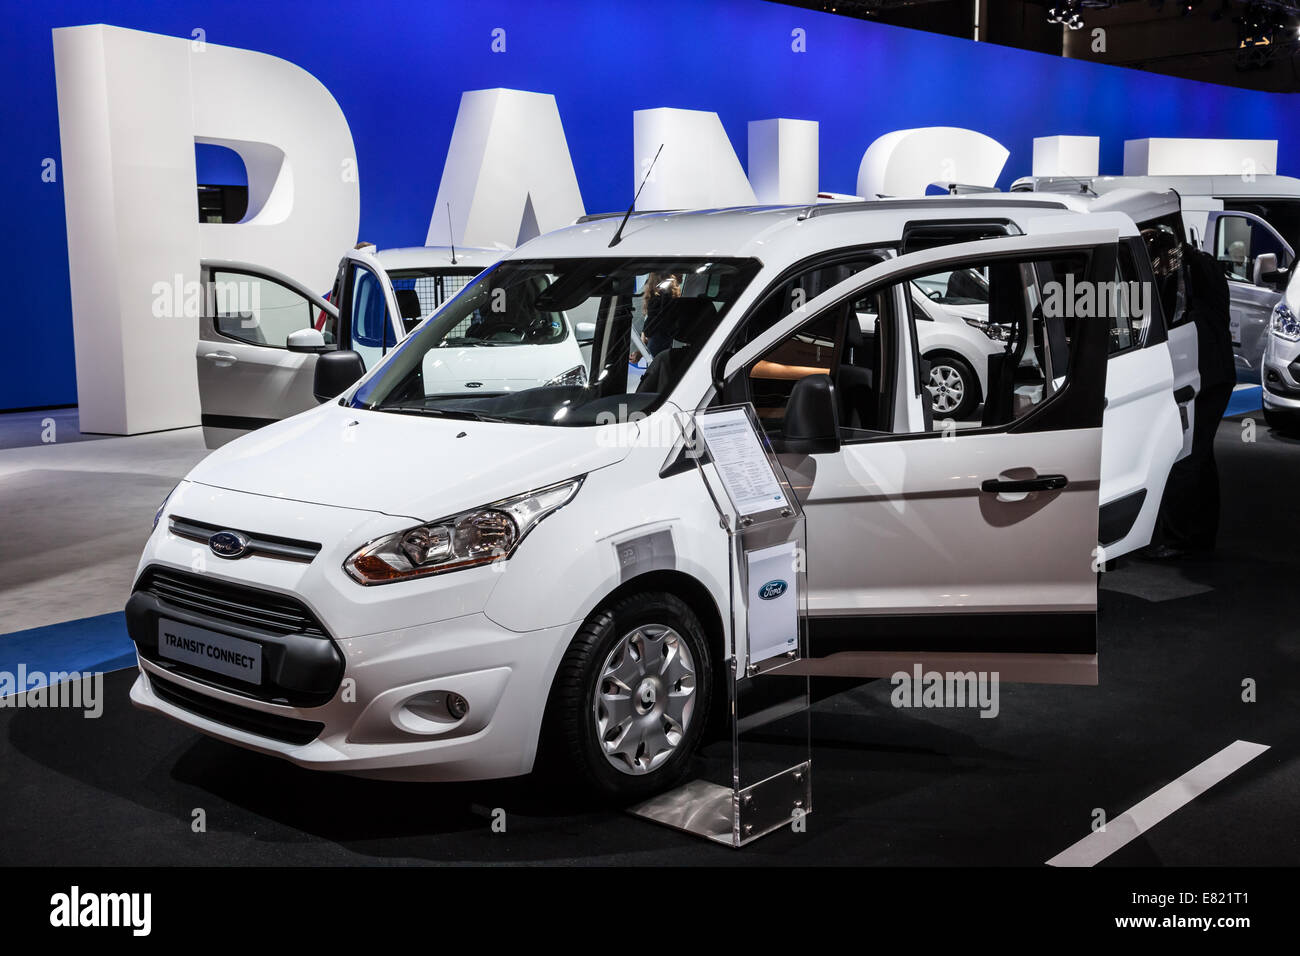 ford transit stockfotos ford transit bilder alamy. Black Bedroom Furniture Sets. Home Design Ideas